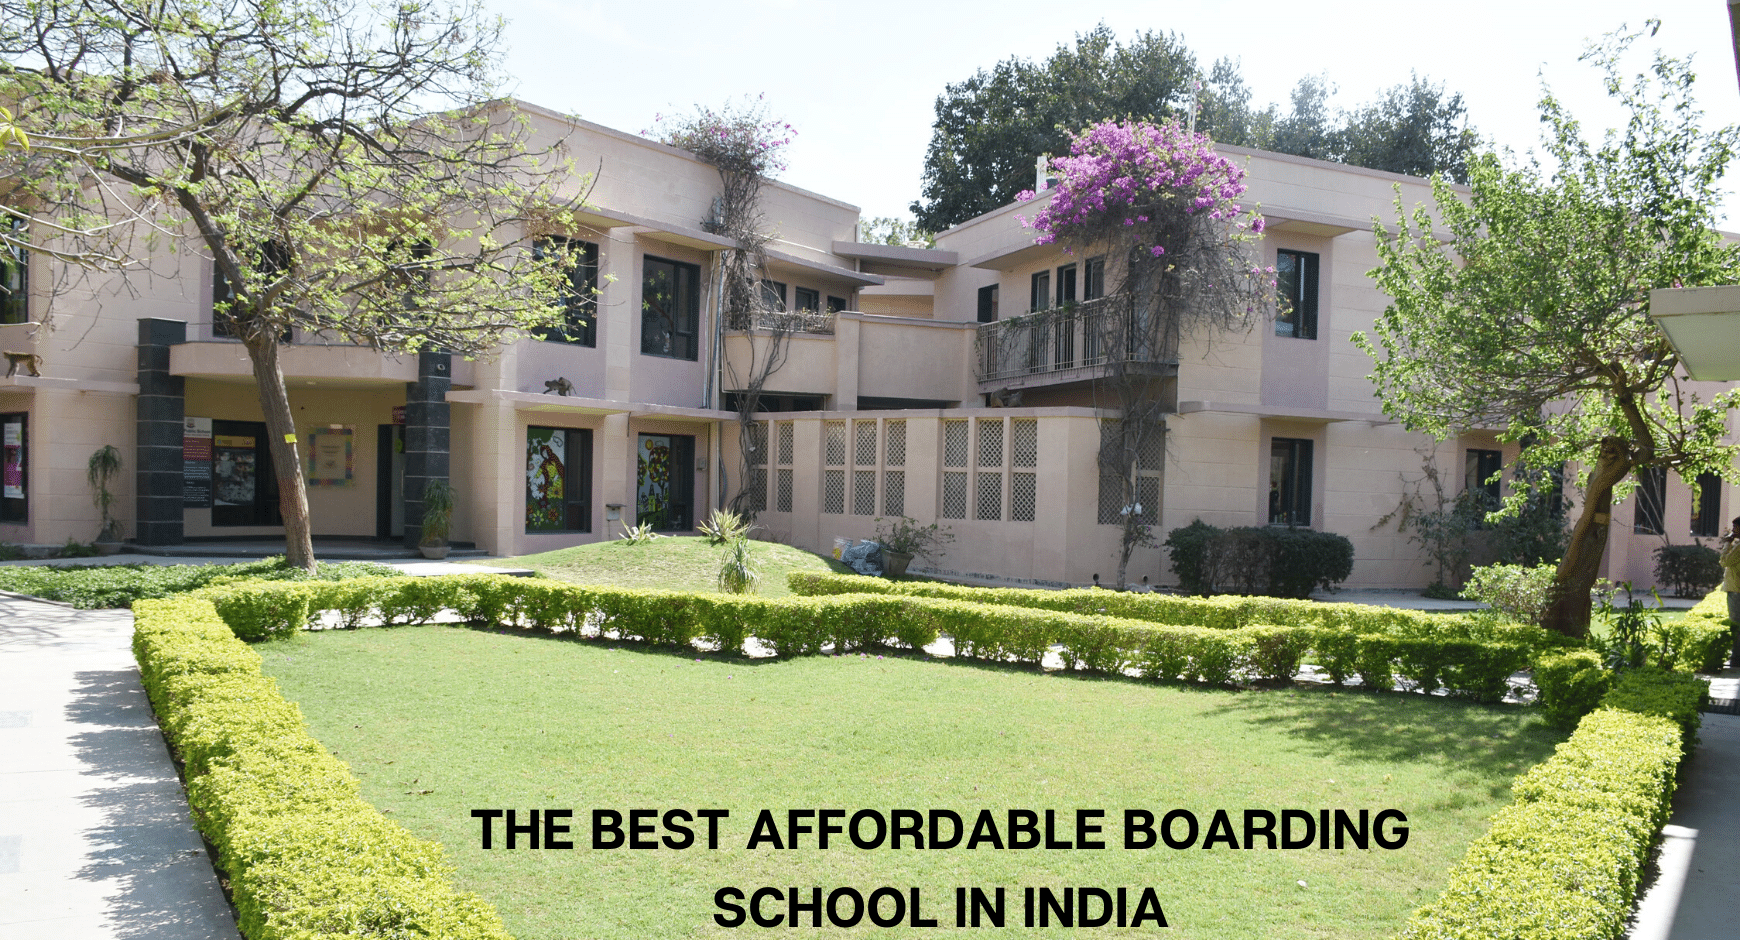 CSKM School – The Best Affordable Boarding School in India